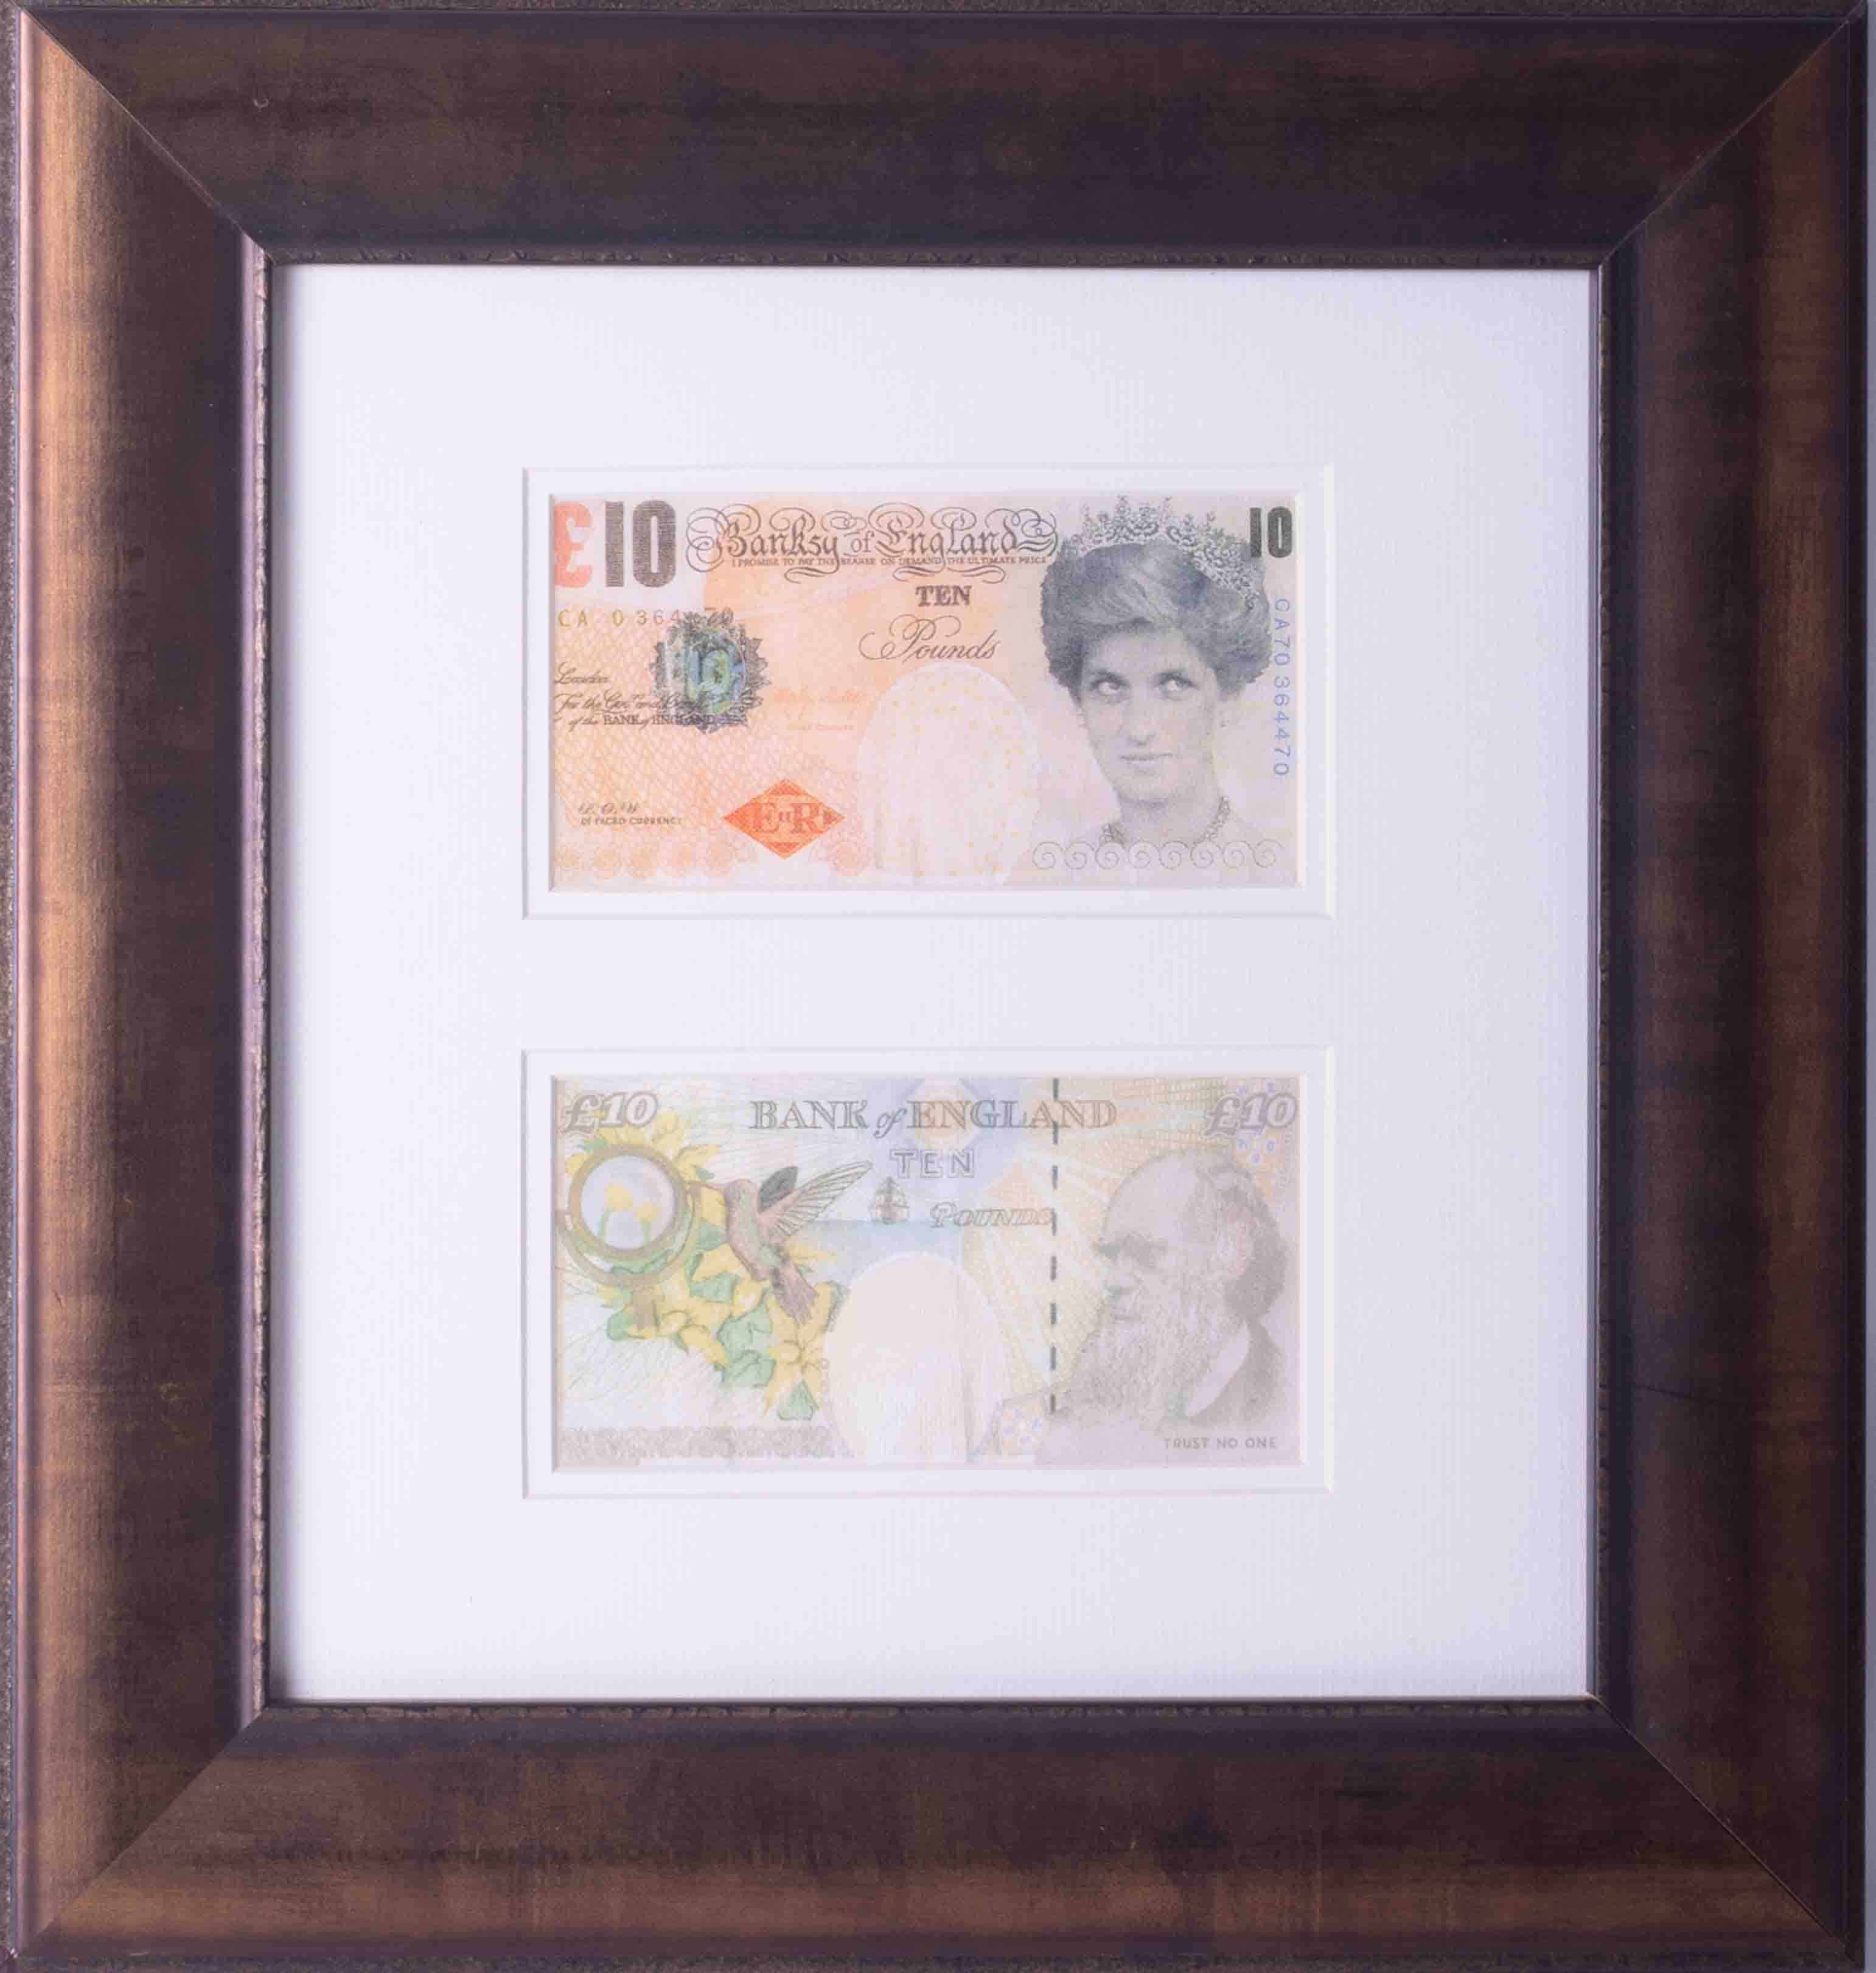 Banksy - 'Two Di-Faced Tenner's', 2004, on paper, Di Faced is a pun on the word, framed and